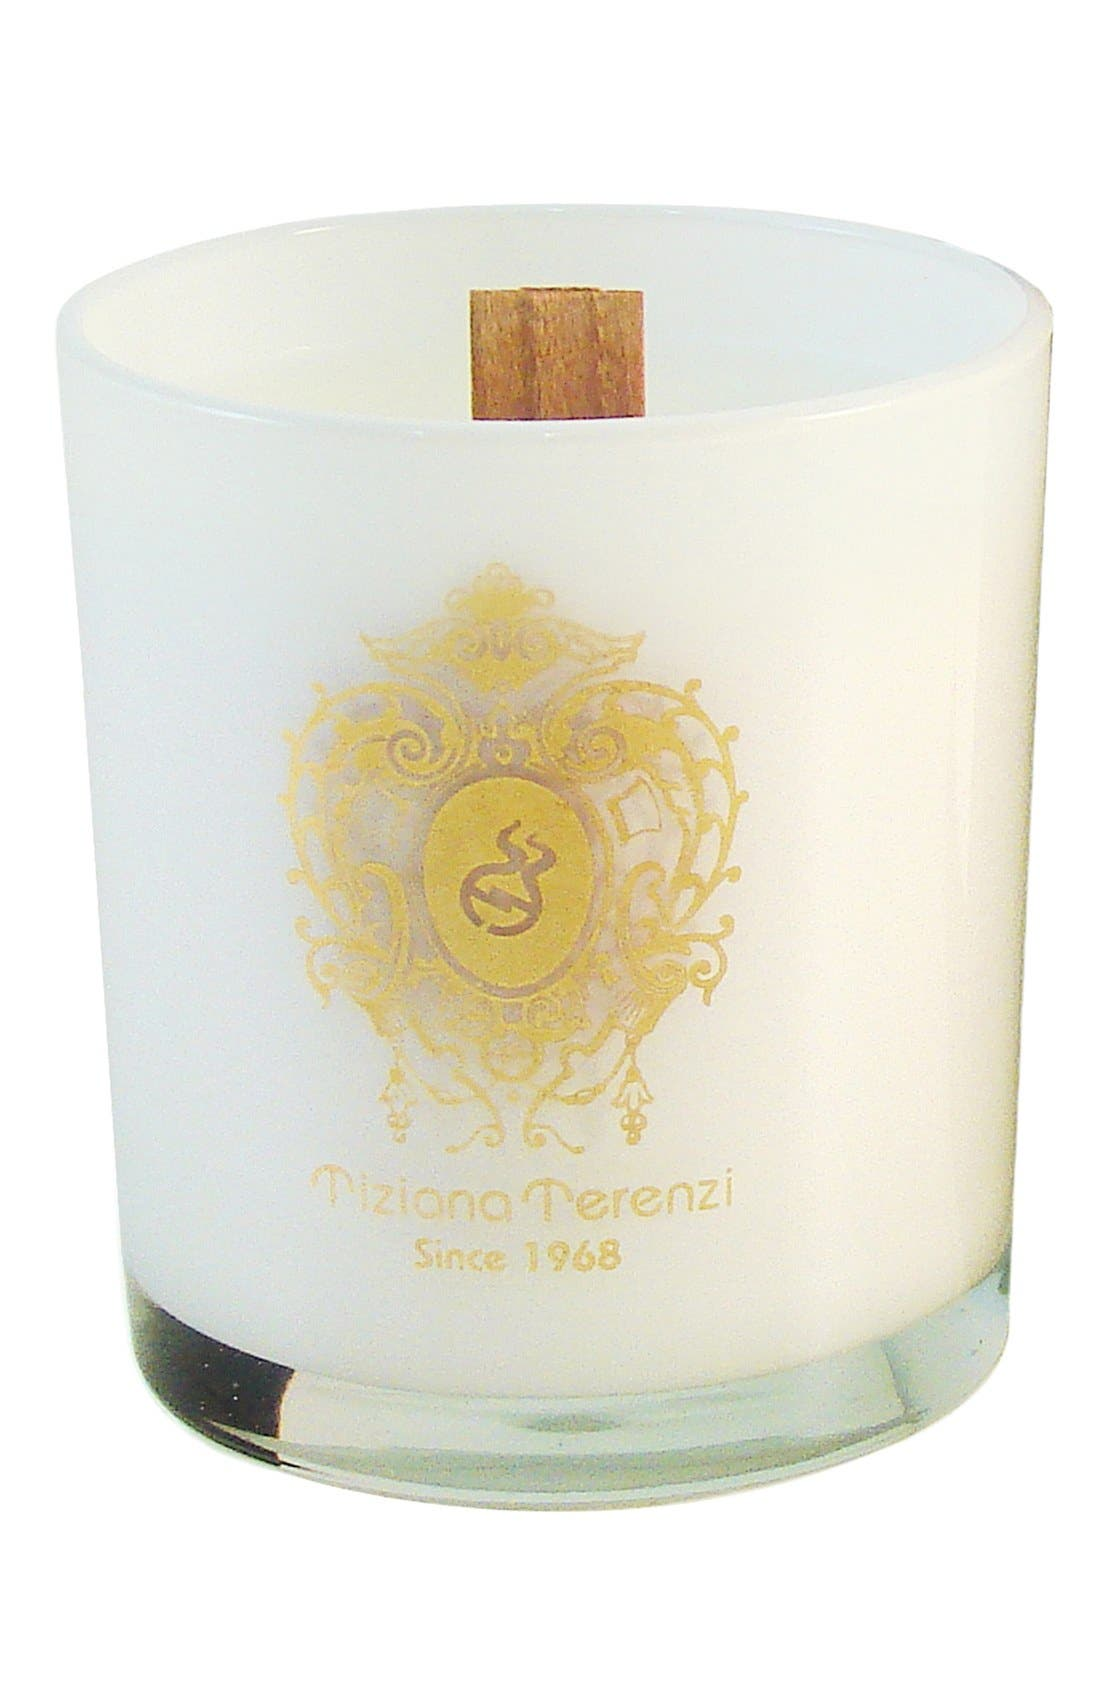 'Spicy Snow' Single Wick Gioconda Candle,                             Main thumbnail 1, color,                             NO COLOR